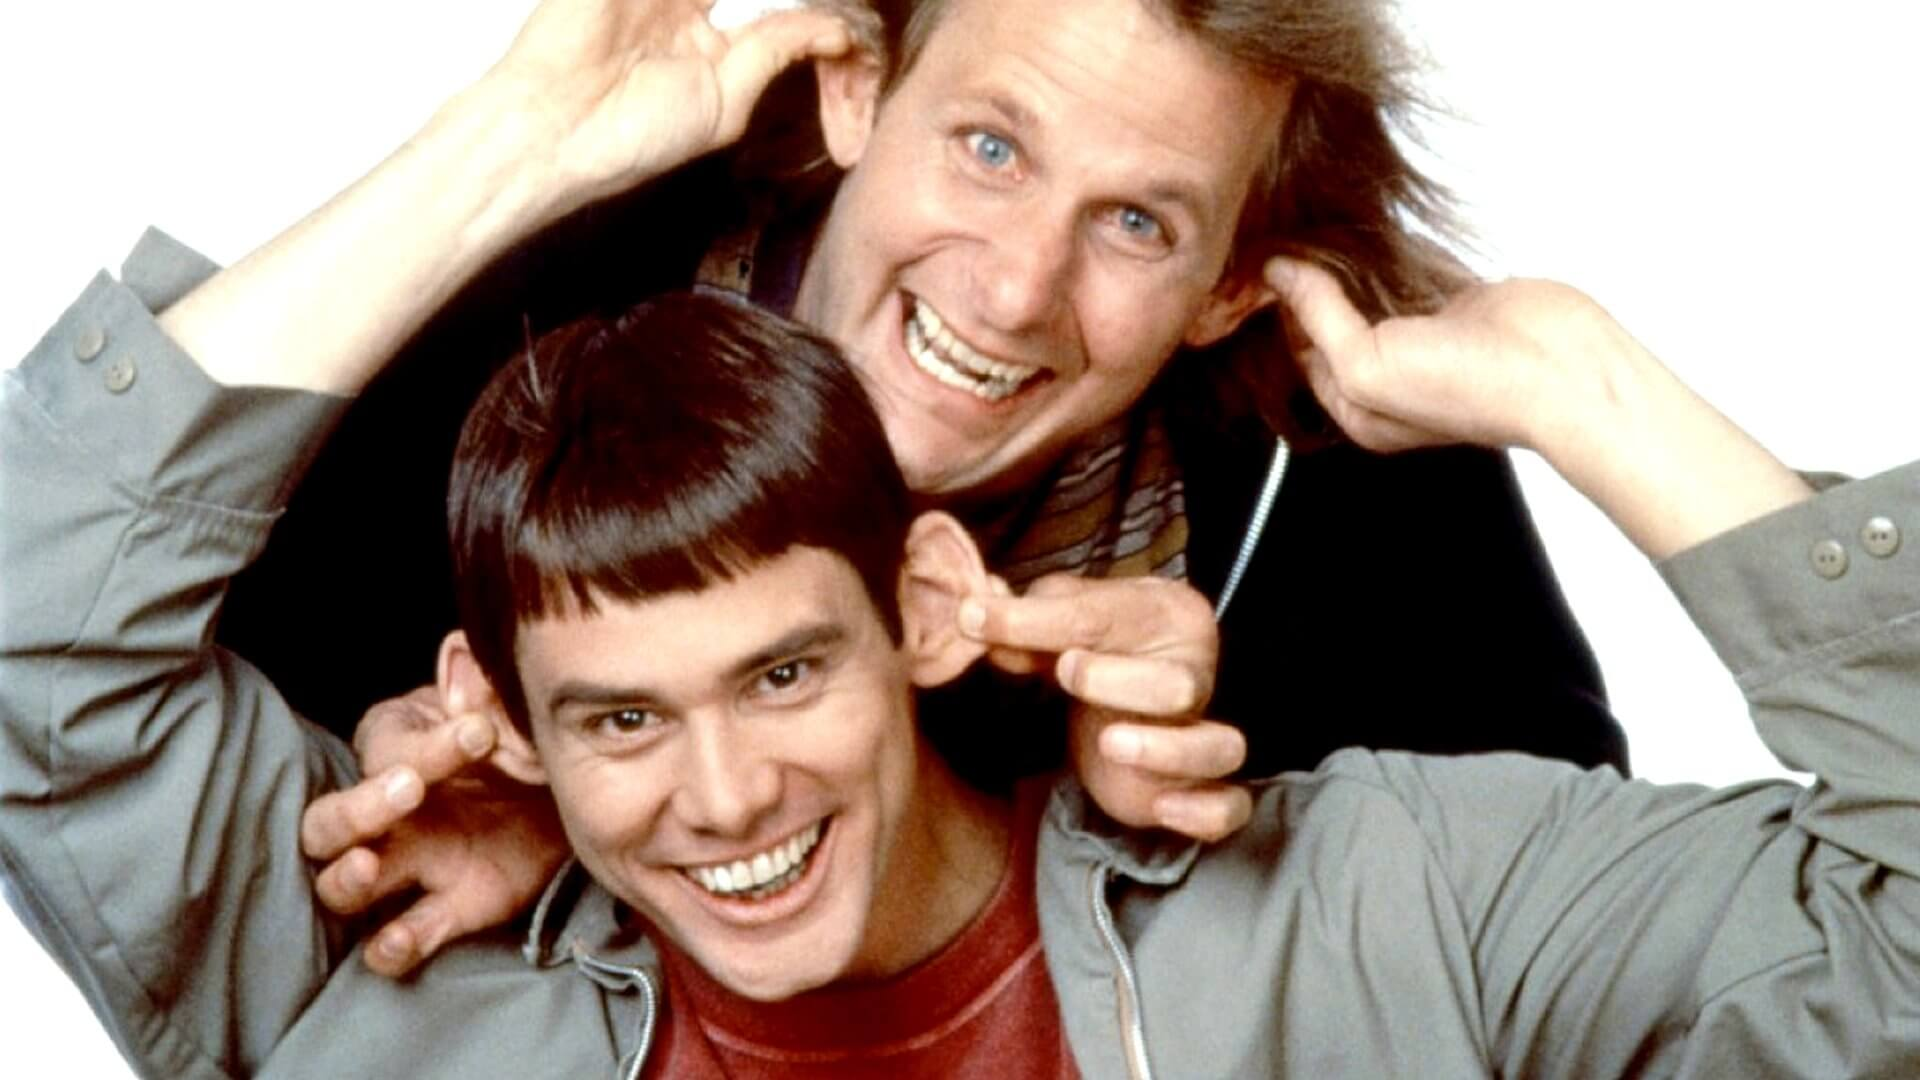 Meanwhile Movie: Dumb & Dumber > WT